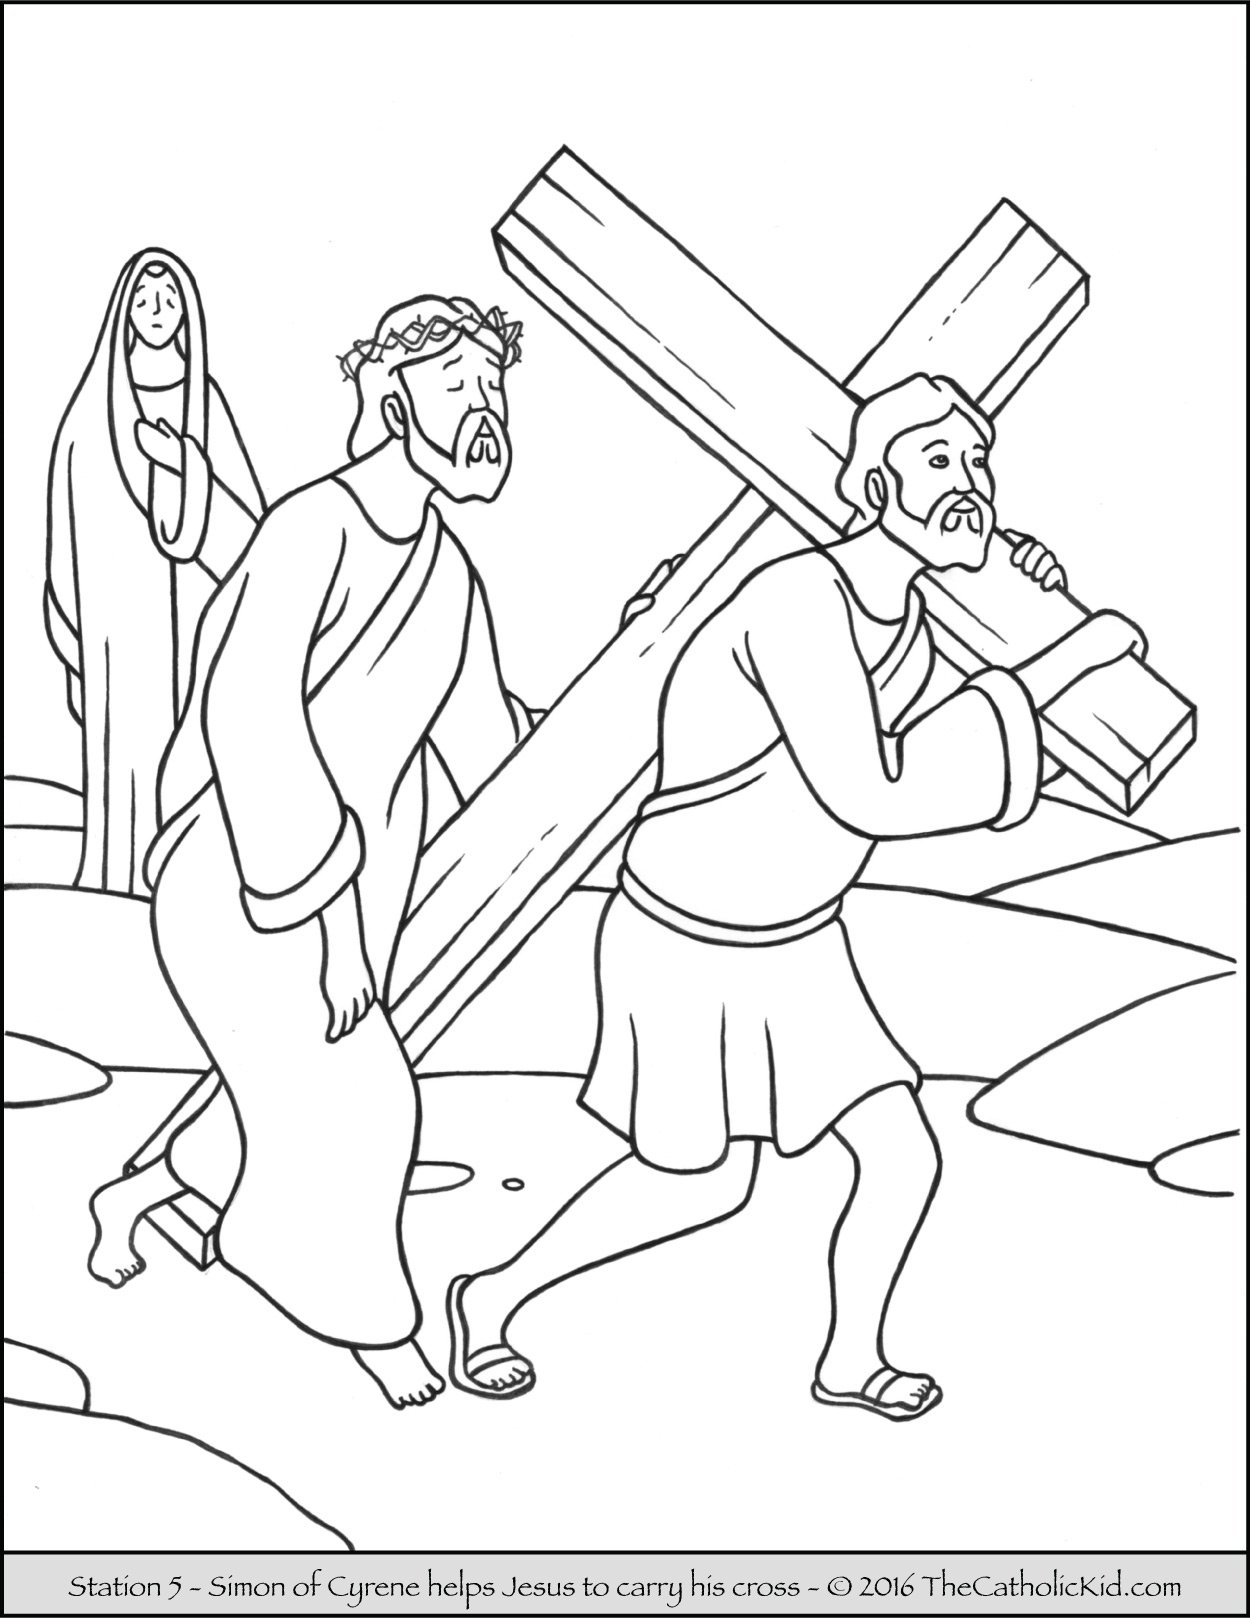 Stations of the Cross Coloring Pages 5 - Simon of Cyrene helps Jesus to carry His cross